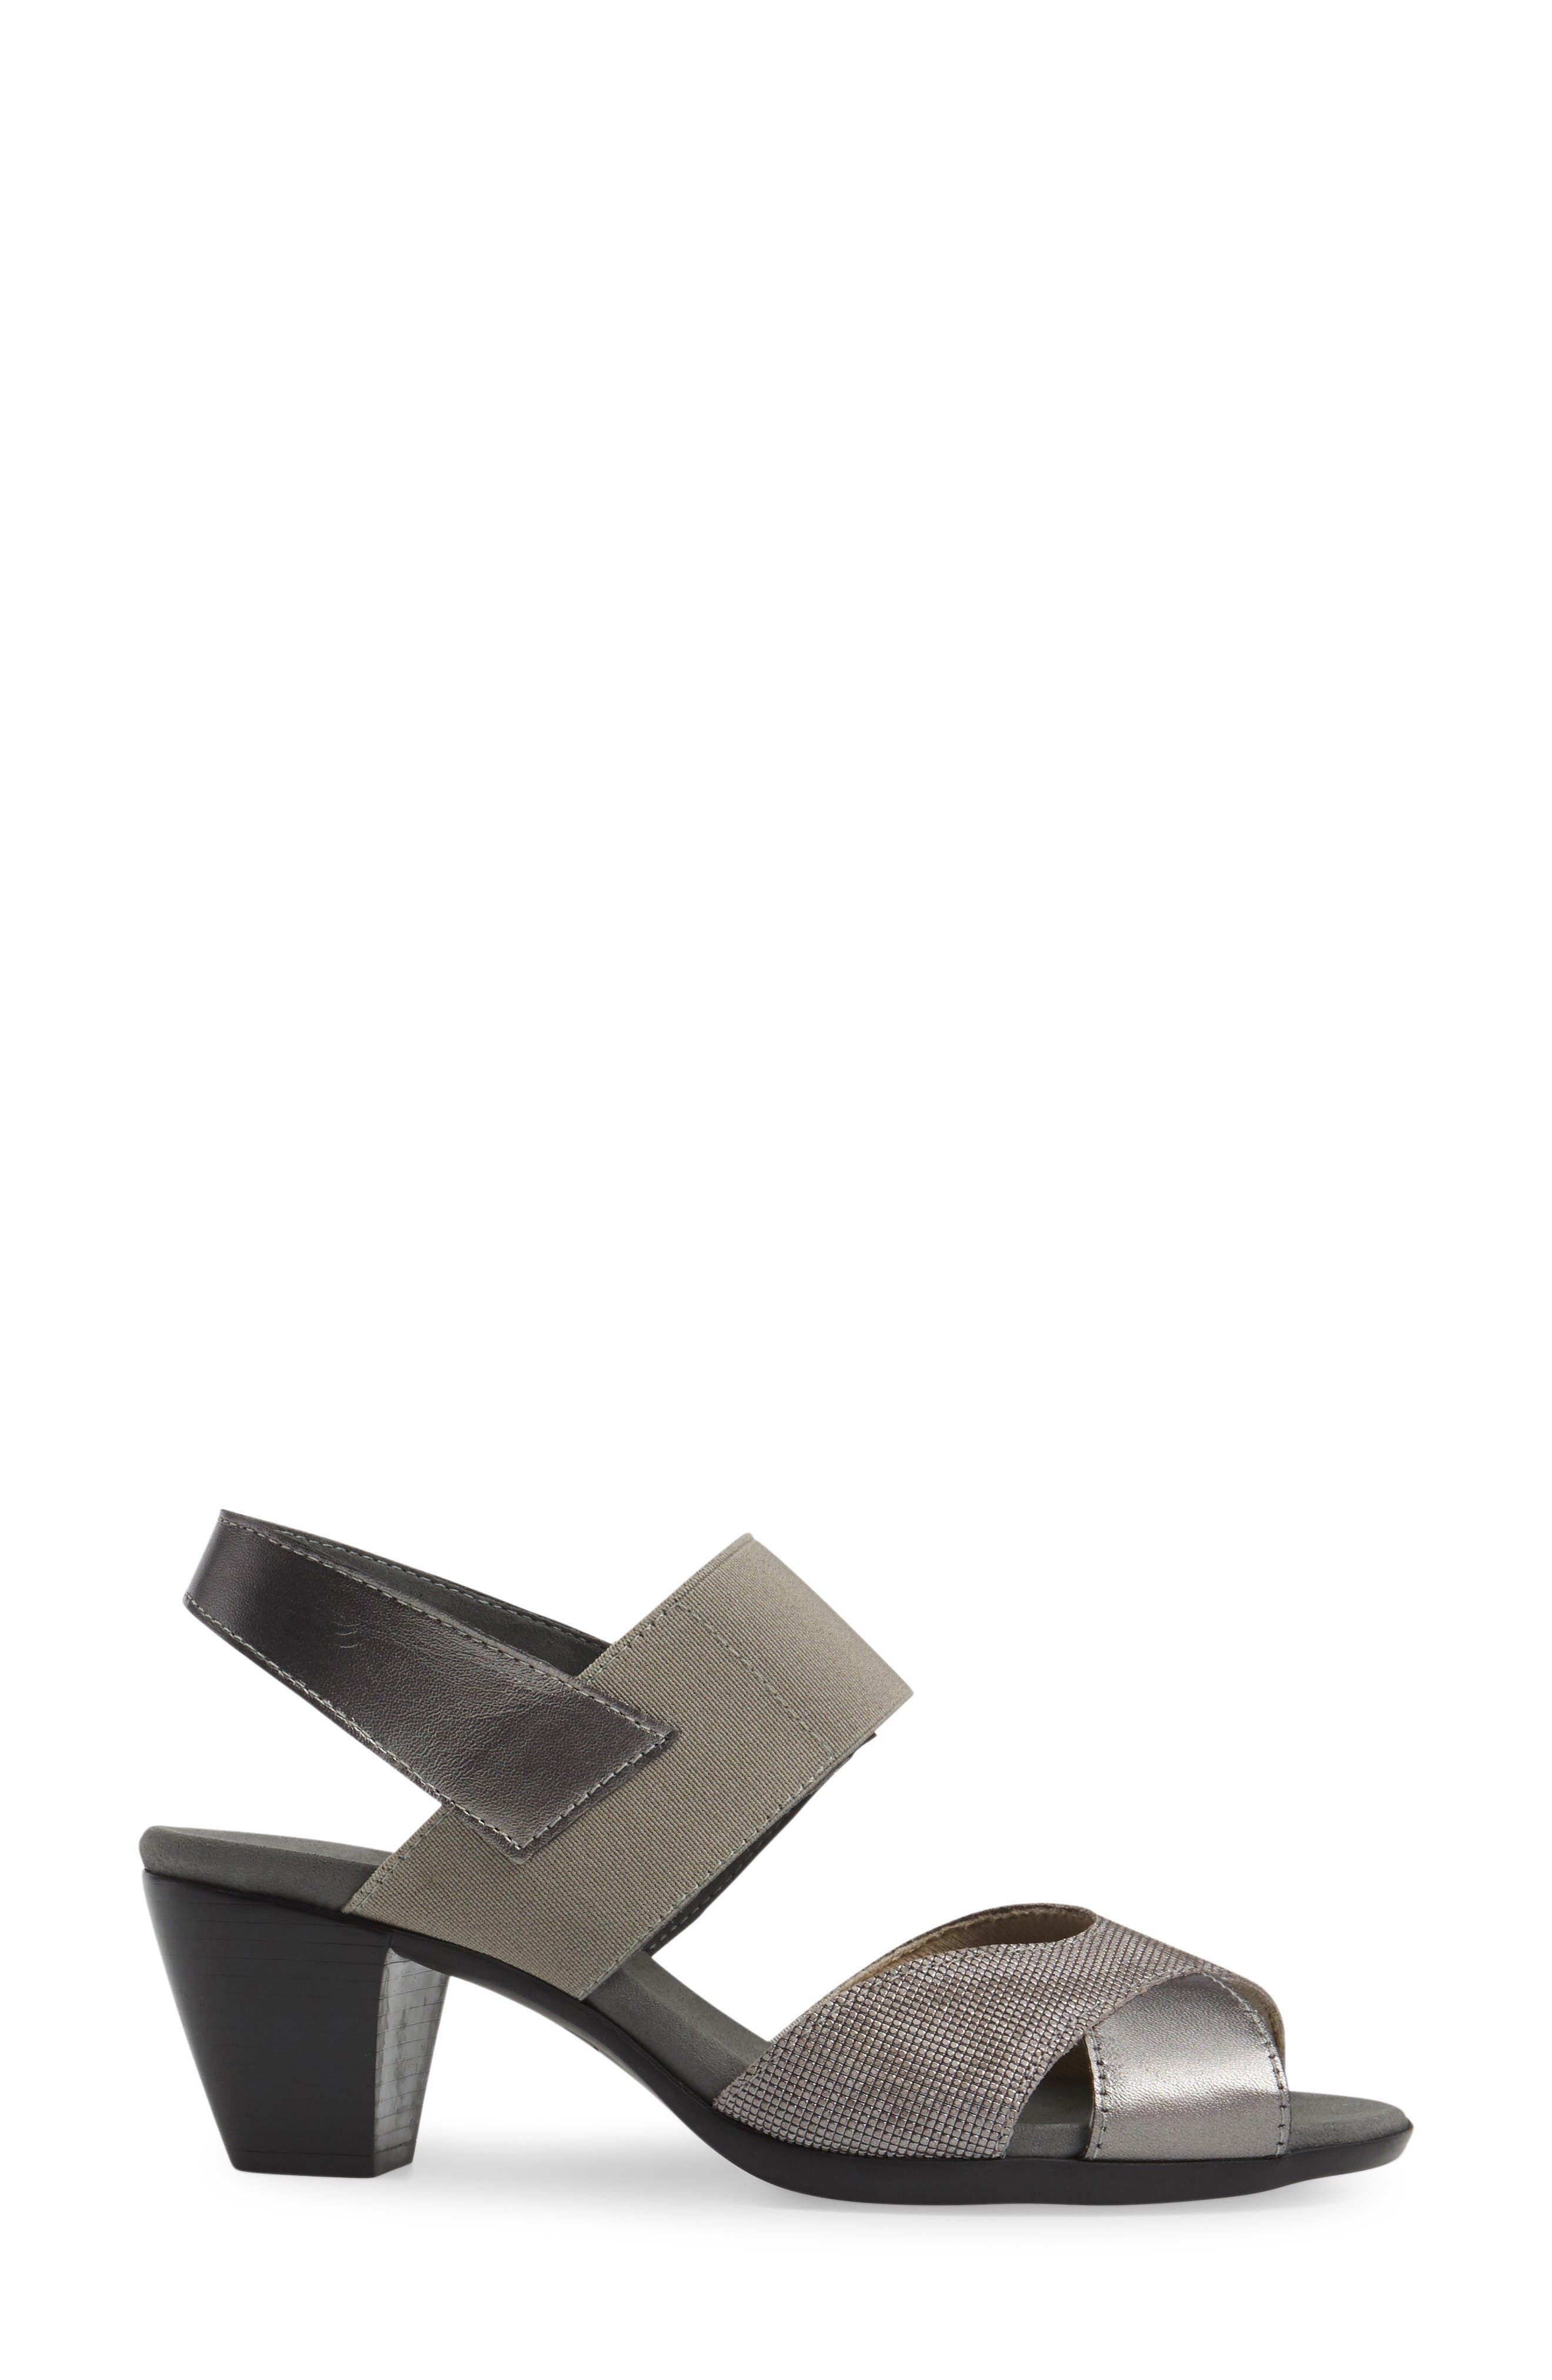 Darling Mixed Finish Slingback Sandal,                             Alternate thumbnail 3, color,                             Pewter Leather